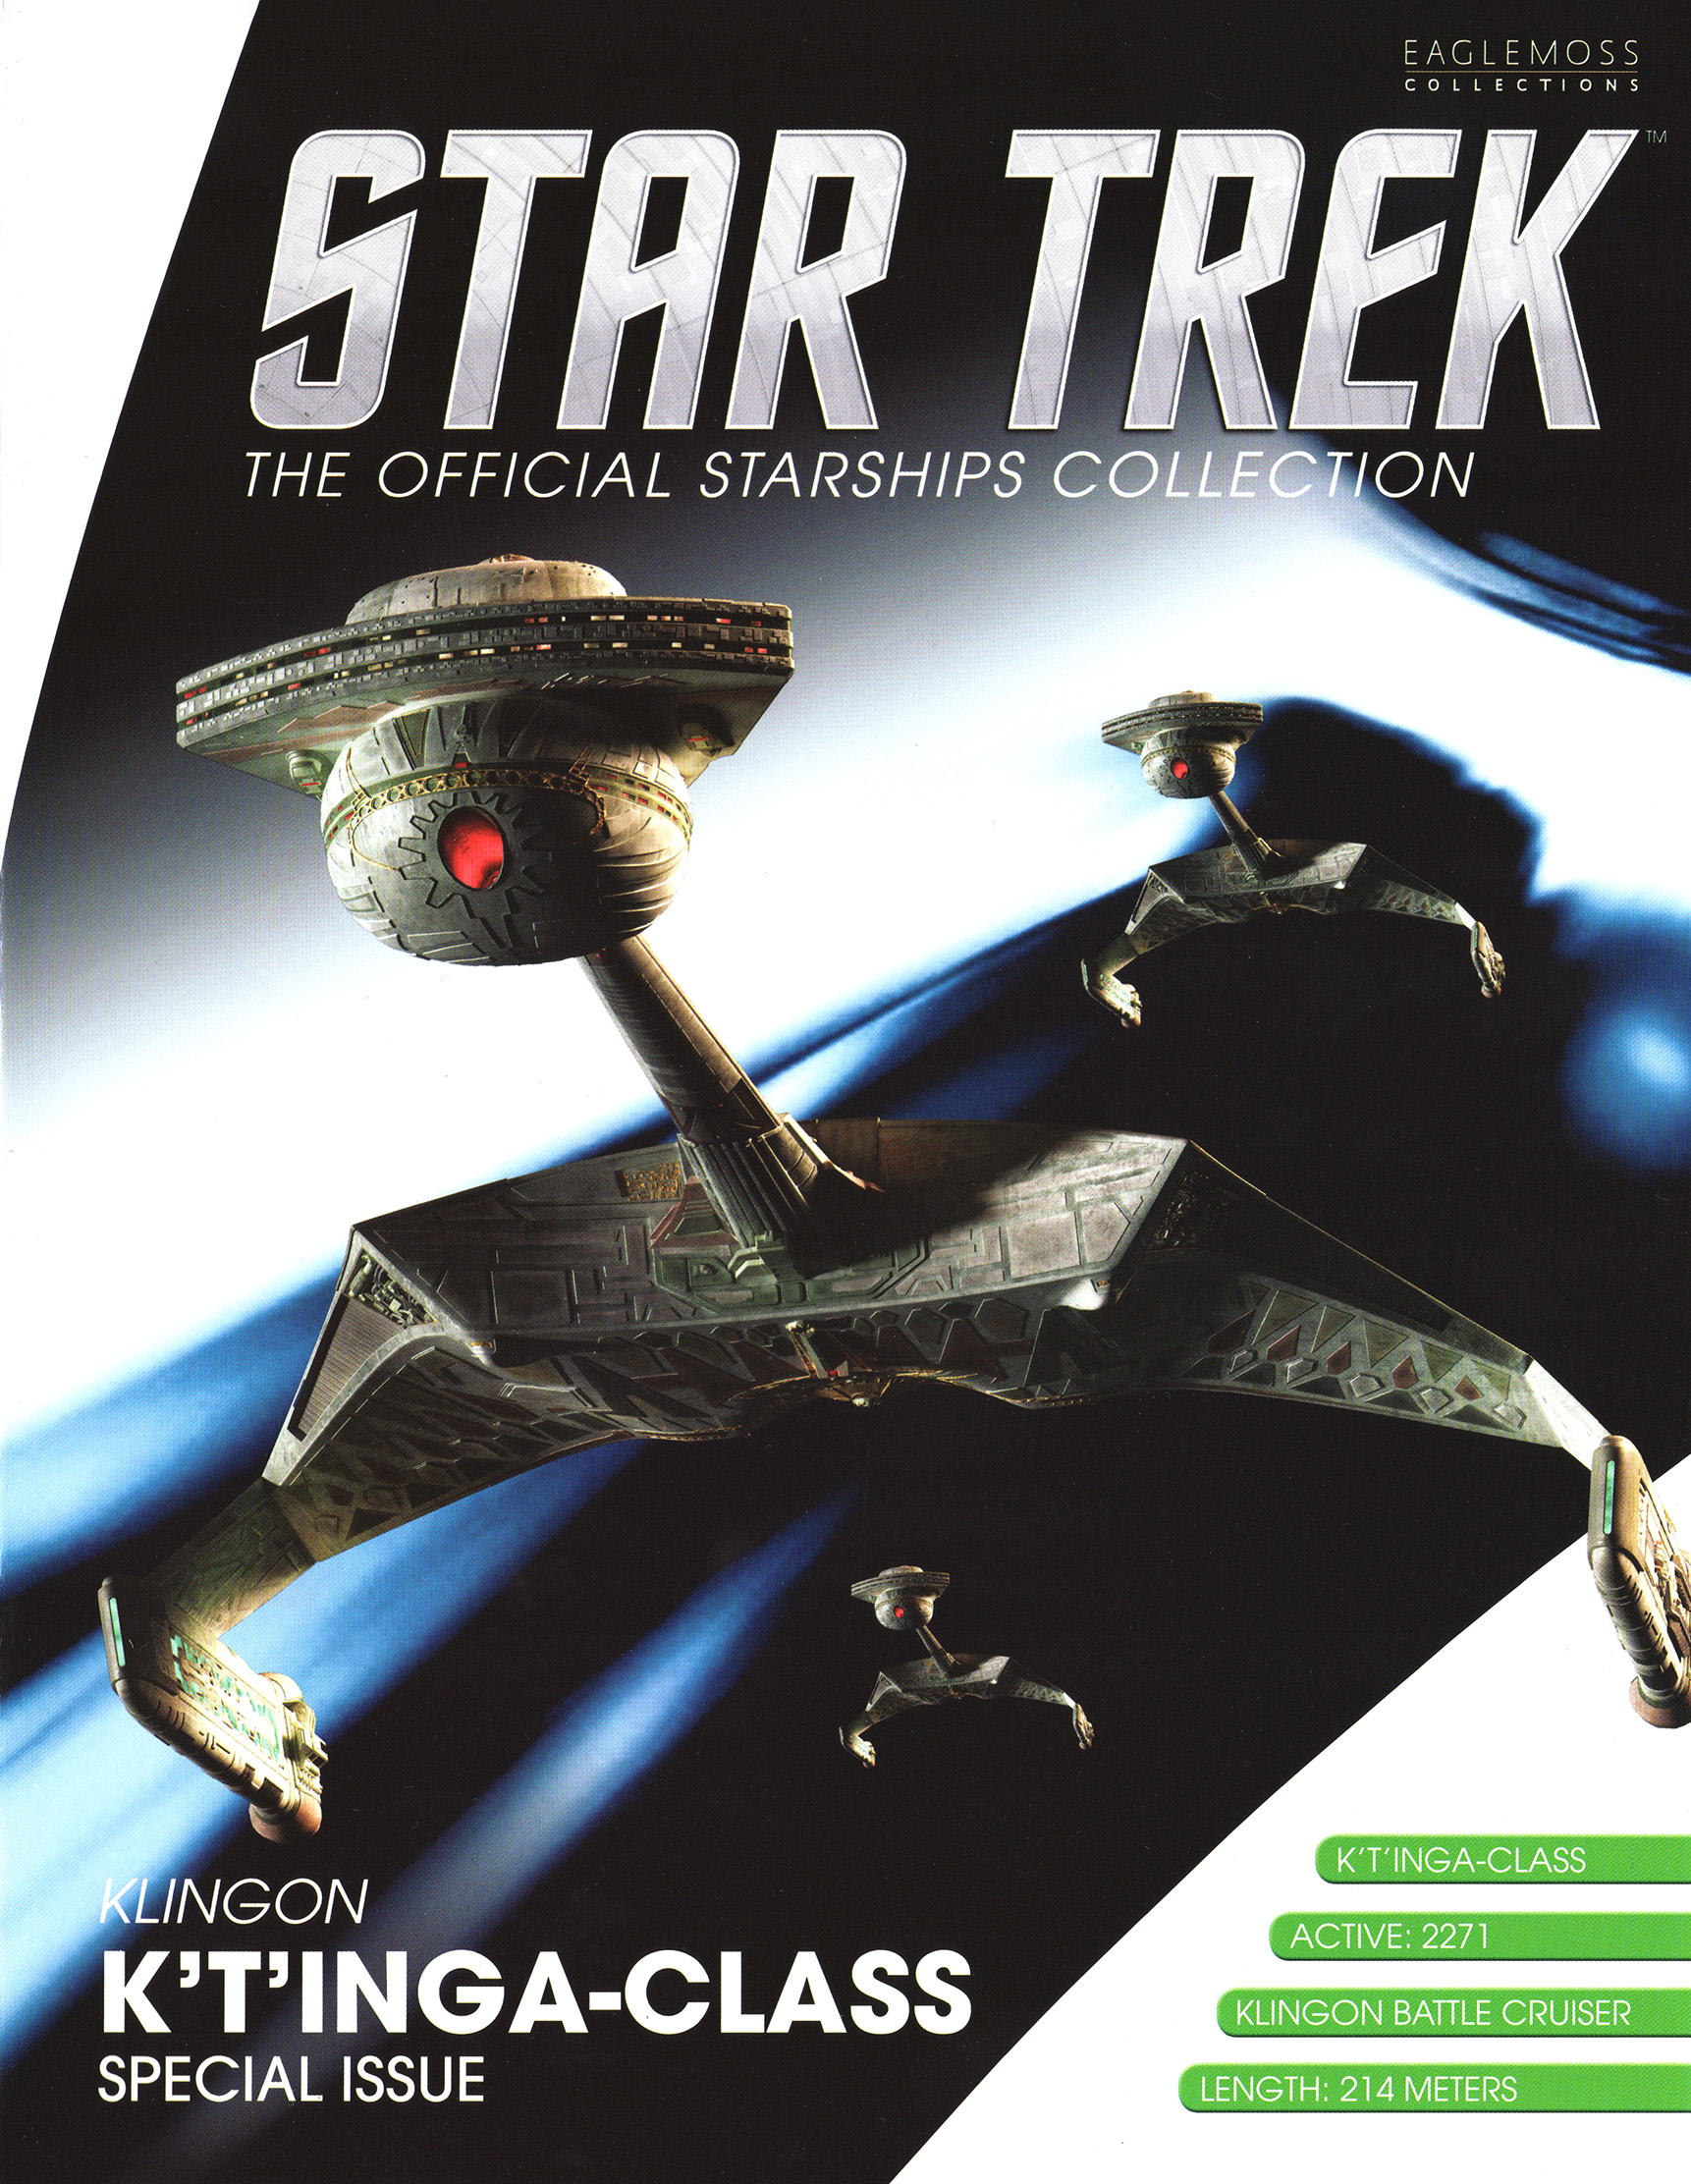 Eaglemoss Star Trek Starships XL Issue 18